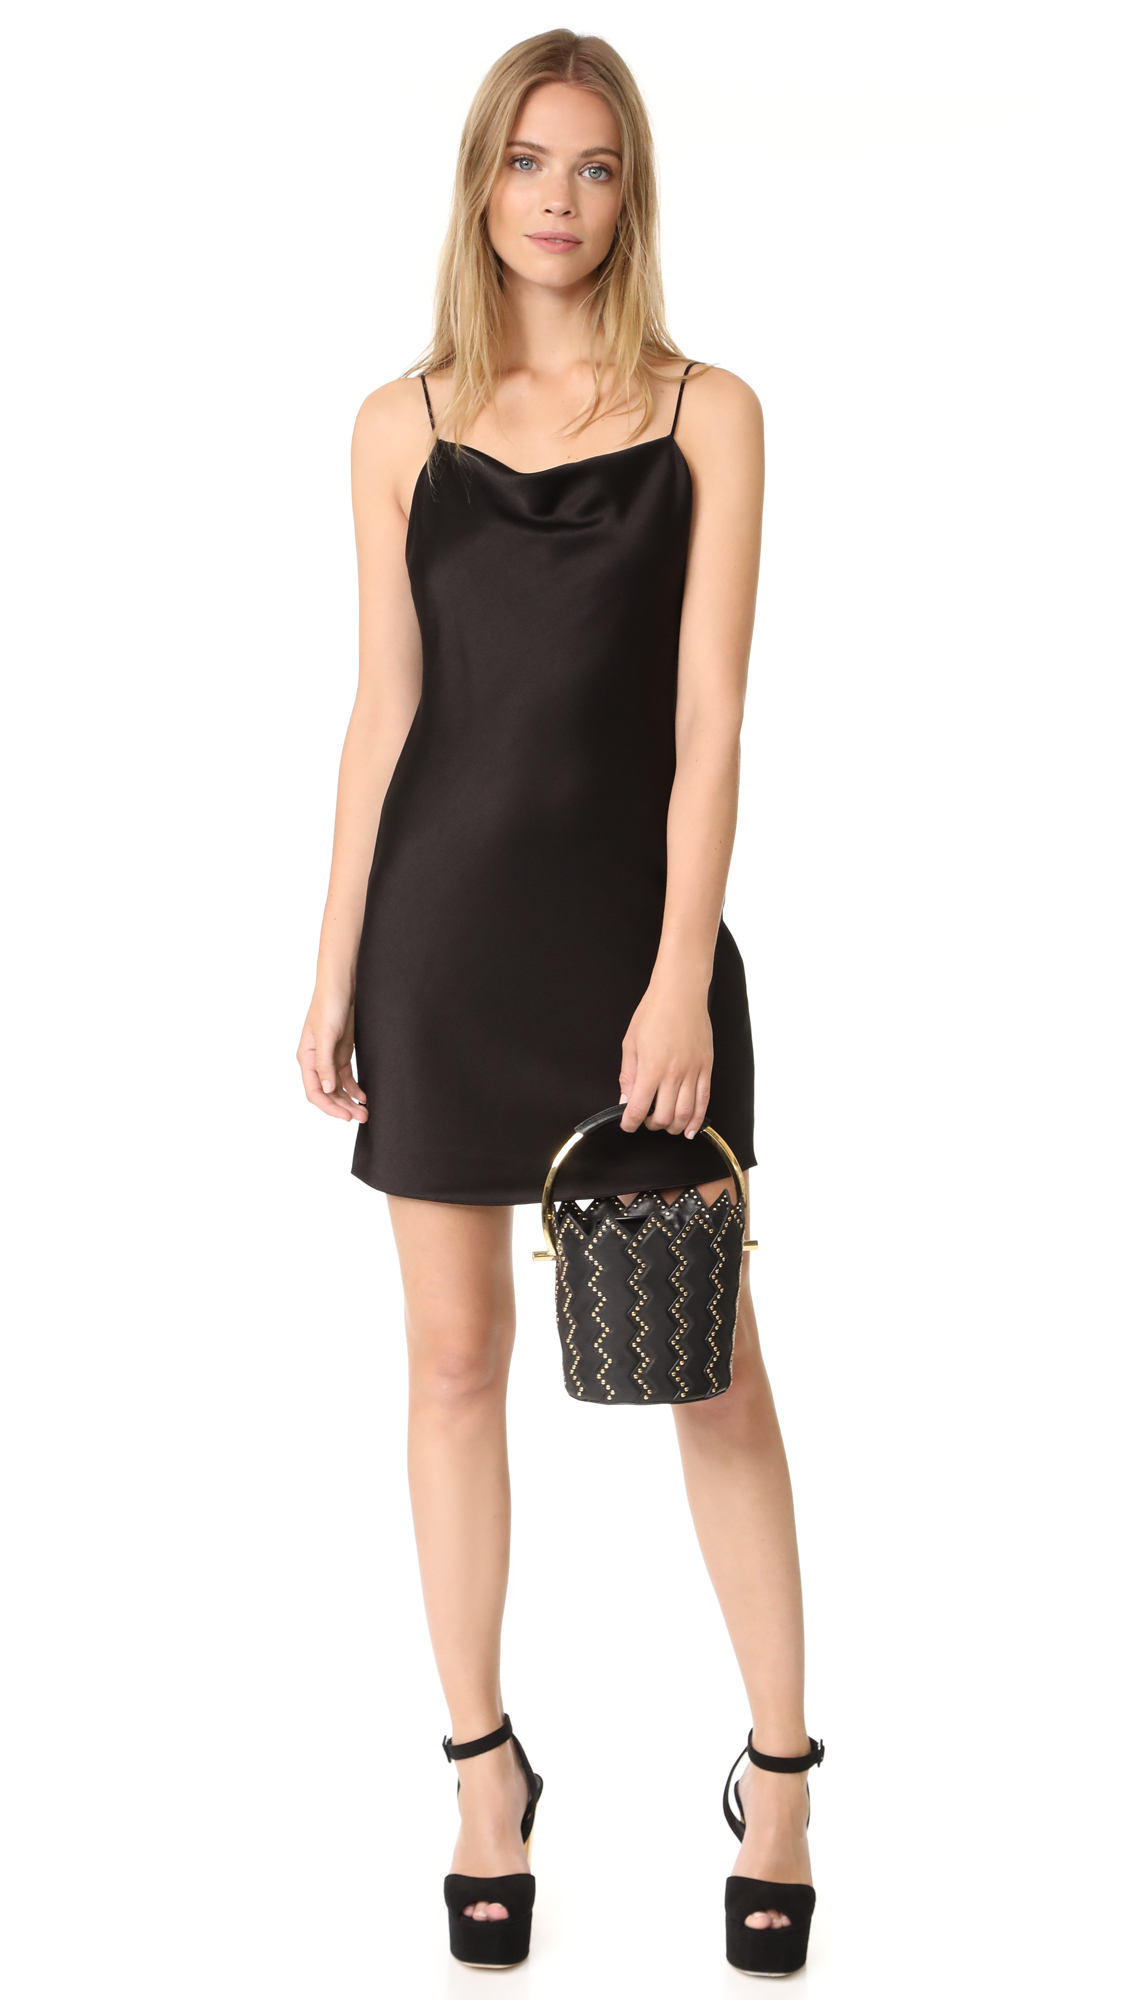 d3a4e63582 alice + olivia Harmony Drapey Slip Dress